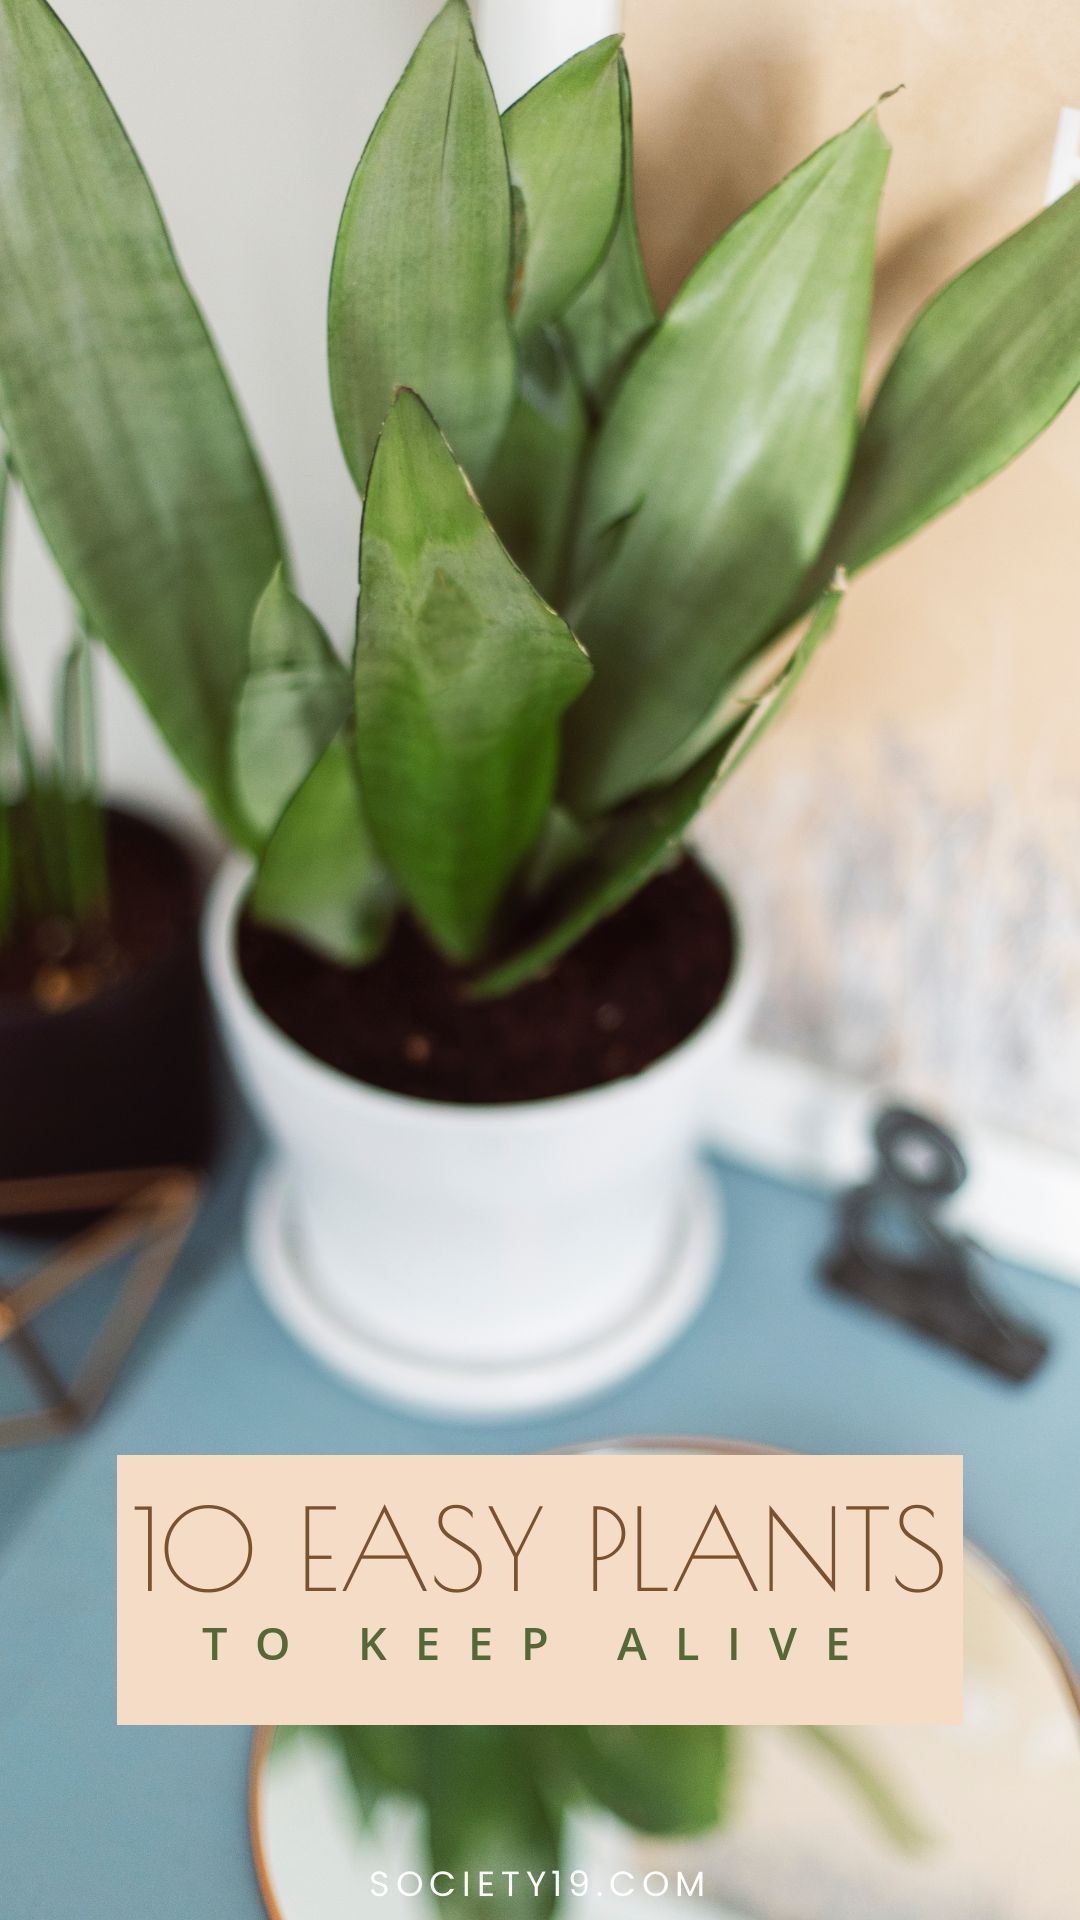 10 Cute Plants You Can Actually Keep Alive Society19 Plants Easy Care Houseplants Small House Plants